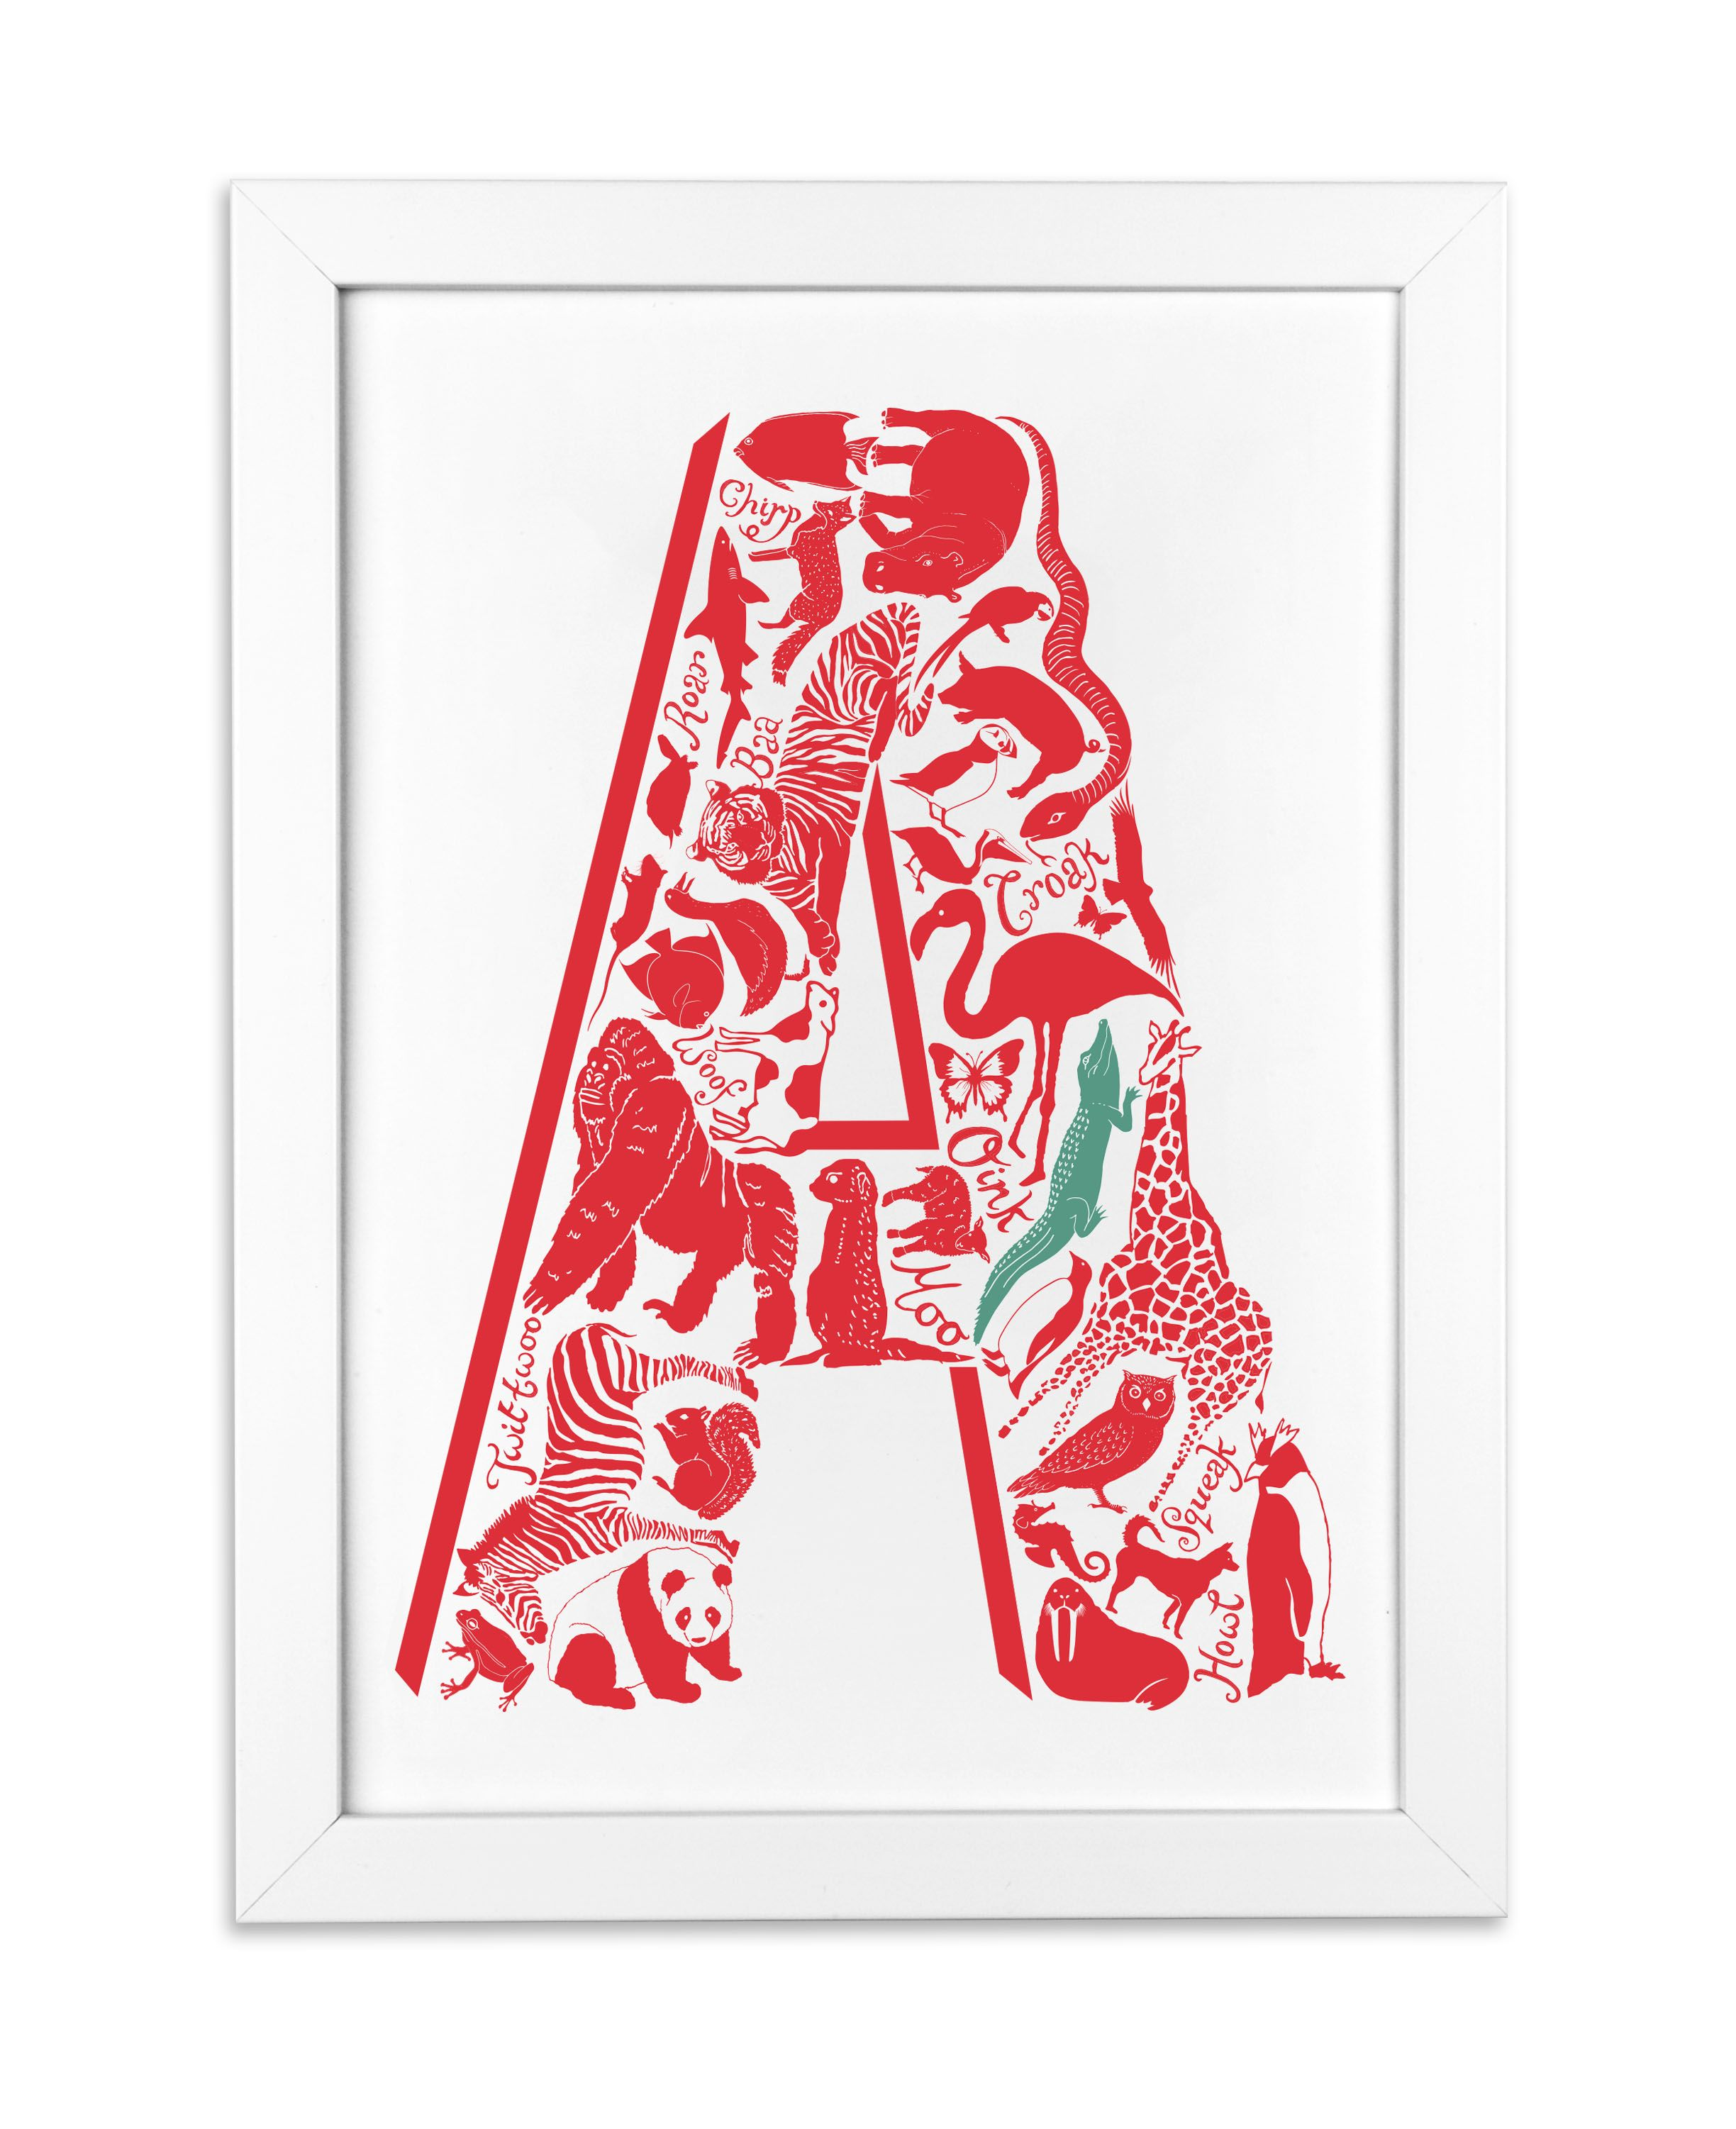 Letter A for a kids room http://www.lucylovesthis.com/ourshop/prod_2690877-Animal-Alphabet-Letter.html